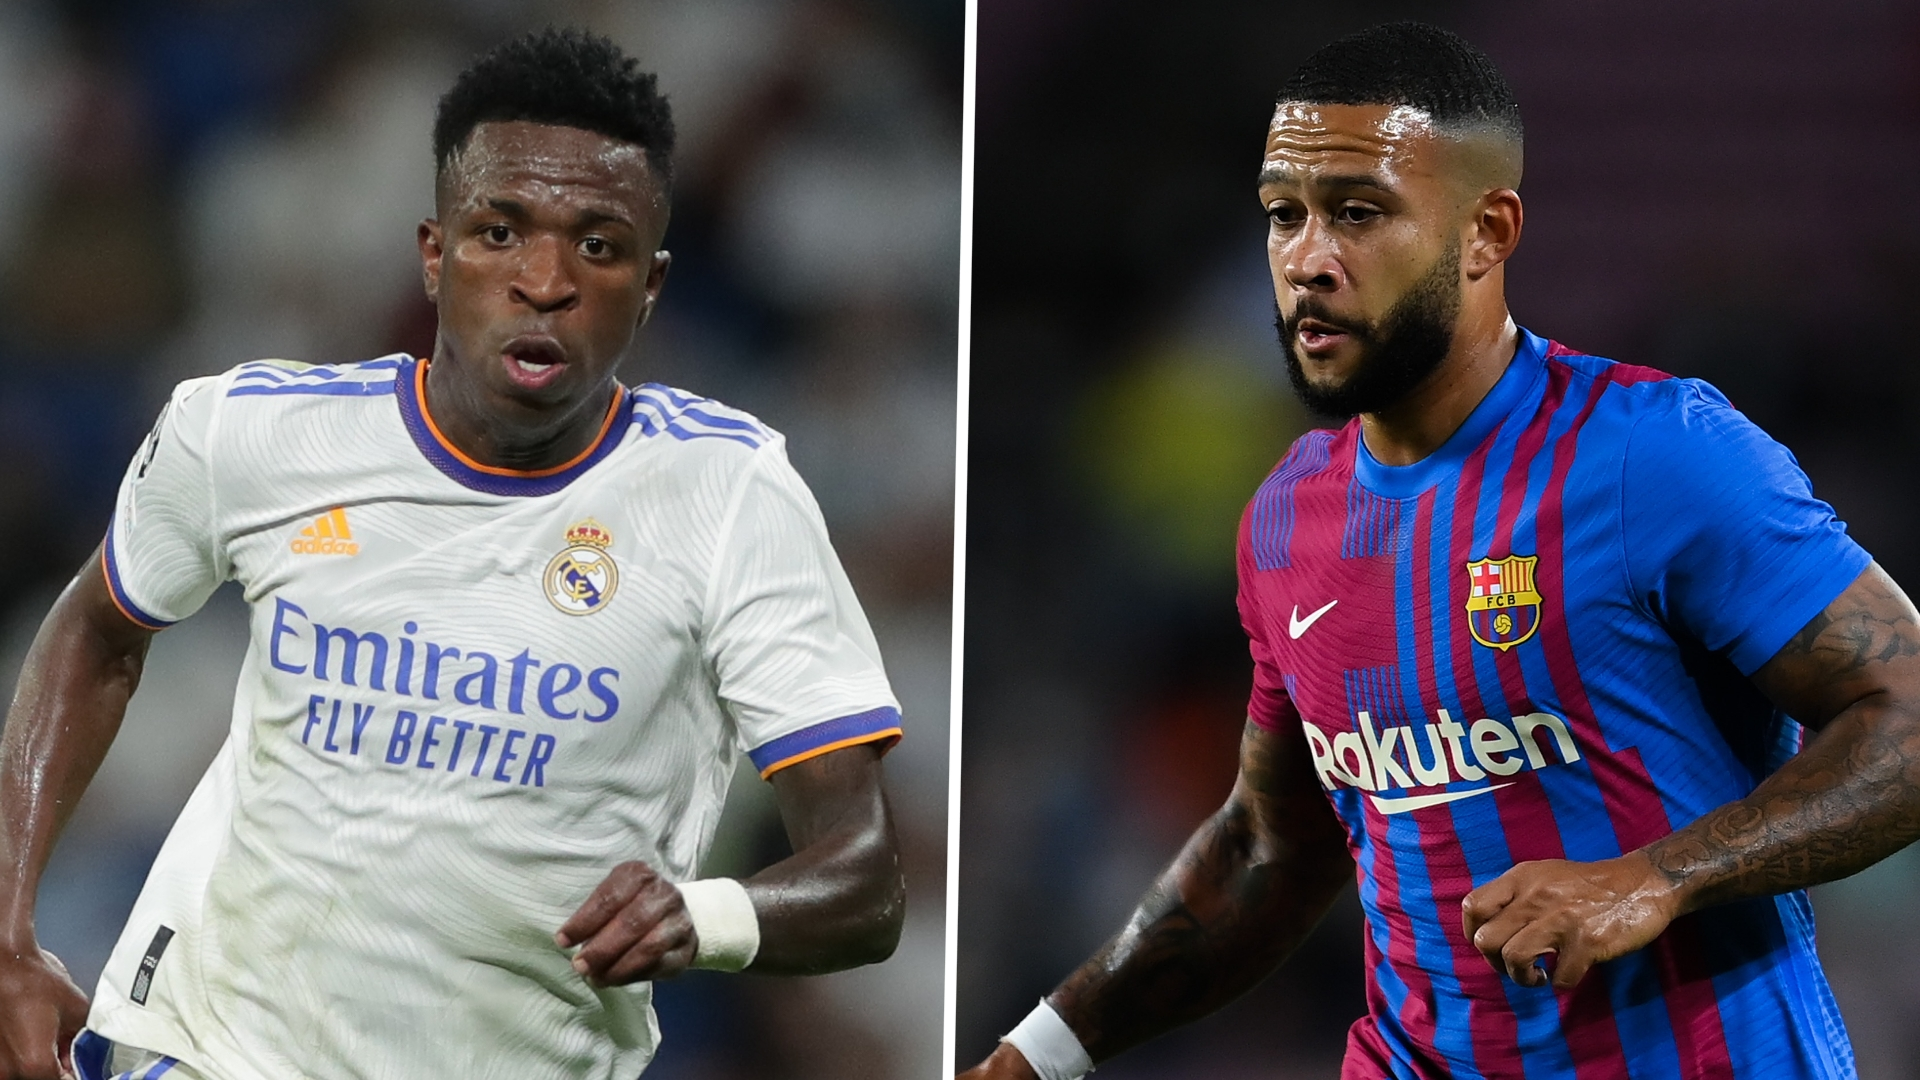 What is El Clasico? Real Madrid vs Barcelona nickname explained